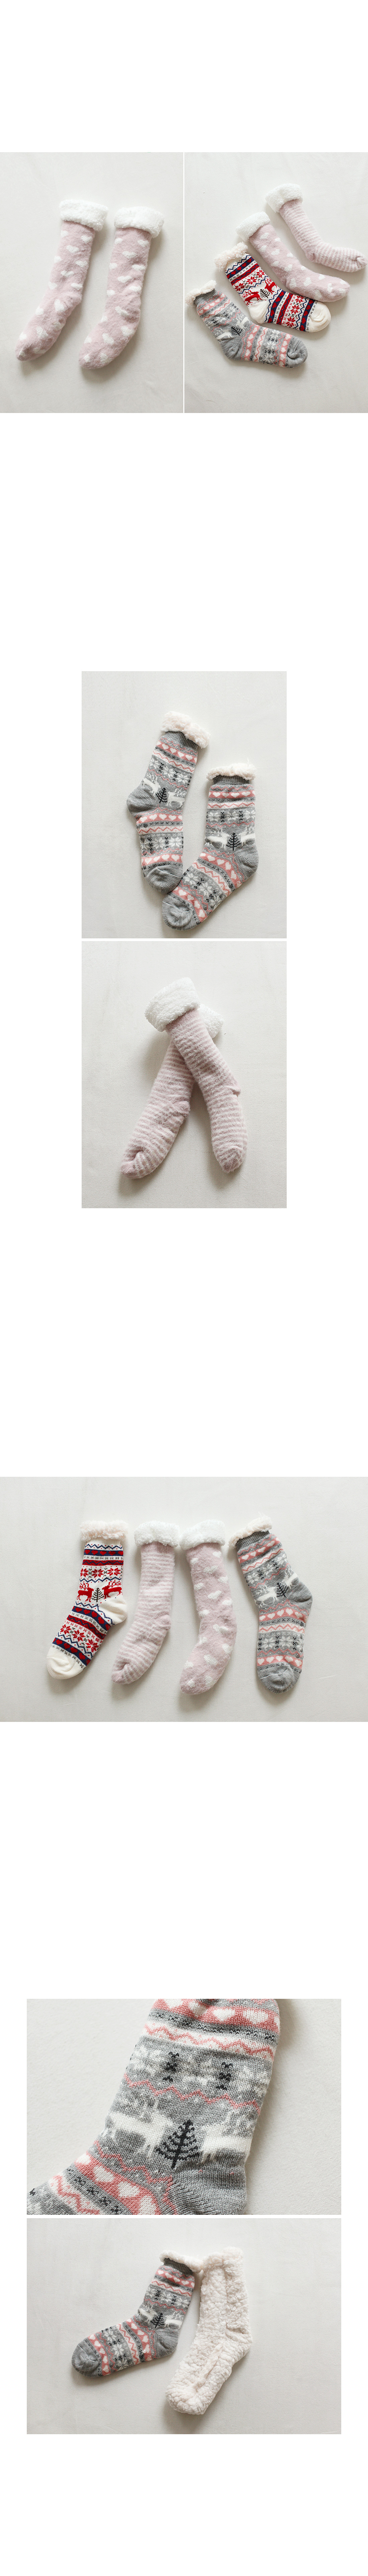 Fleece Lined Ankle Socks|